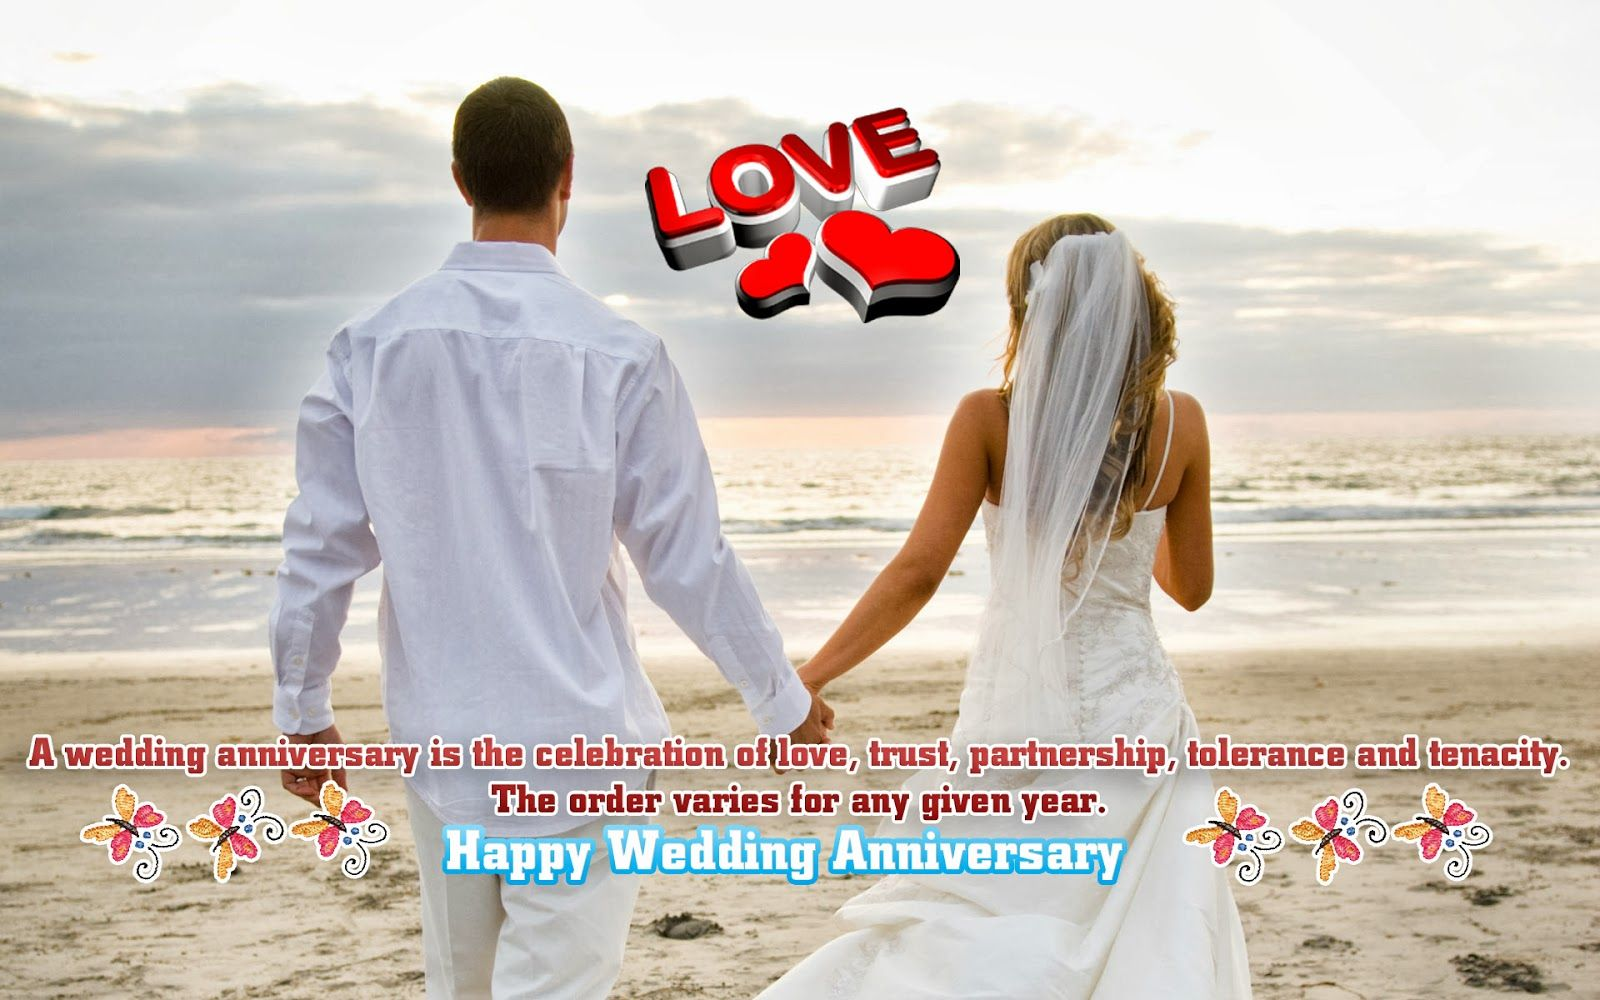 St wedding anniversary wishes wallpapers anniversary wallpapers